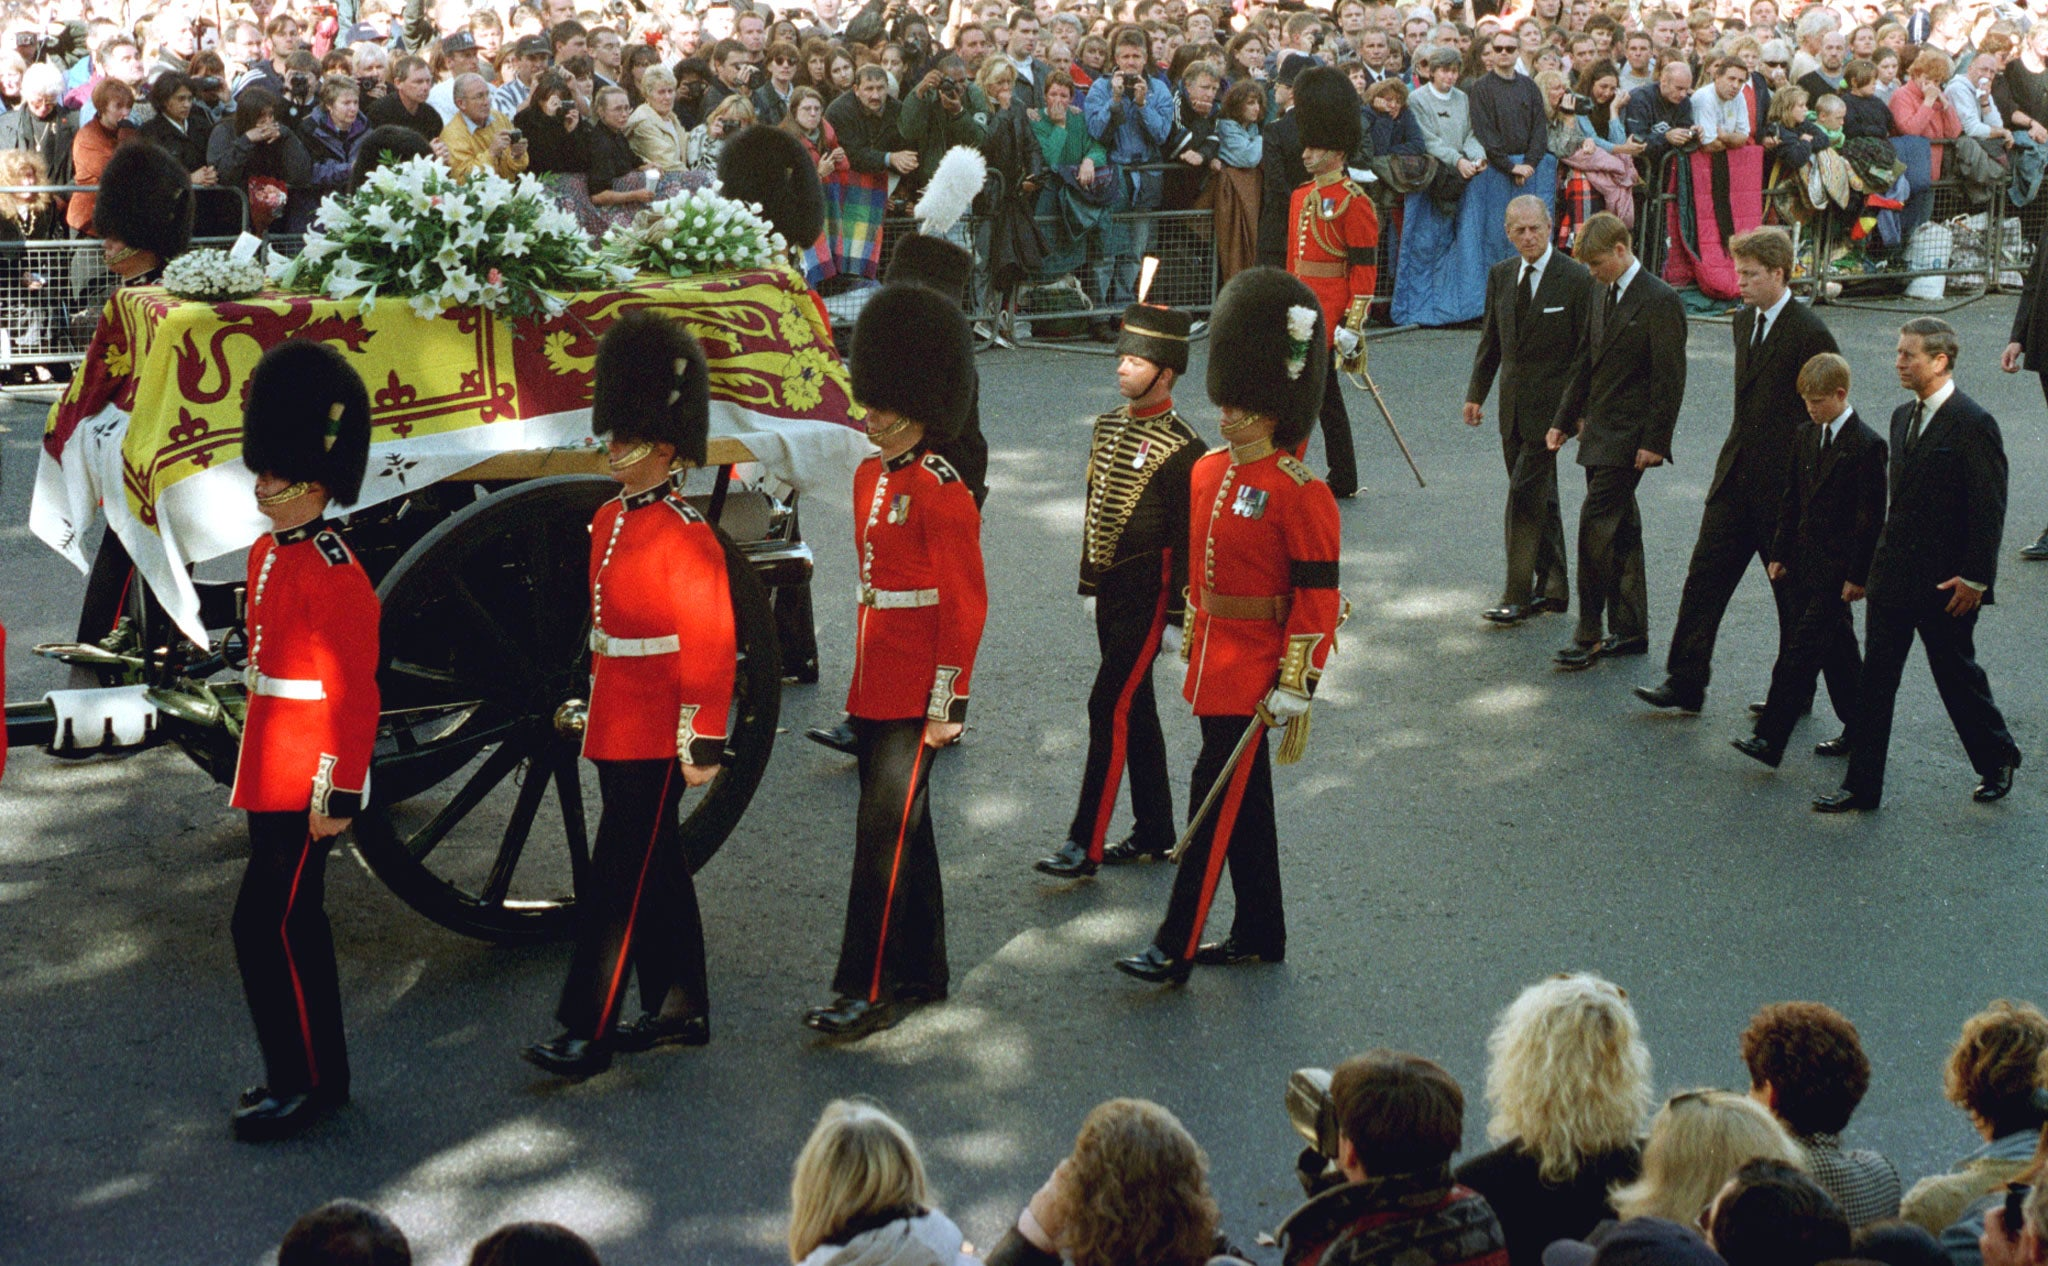 Princess Diana Gravesite Earl Spencer Lied To About William And Harry Walking